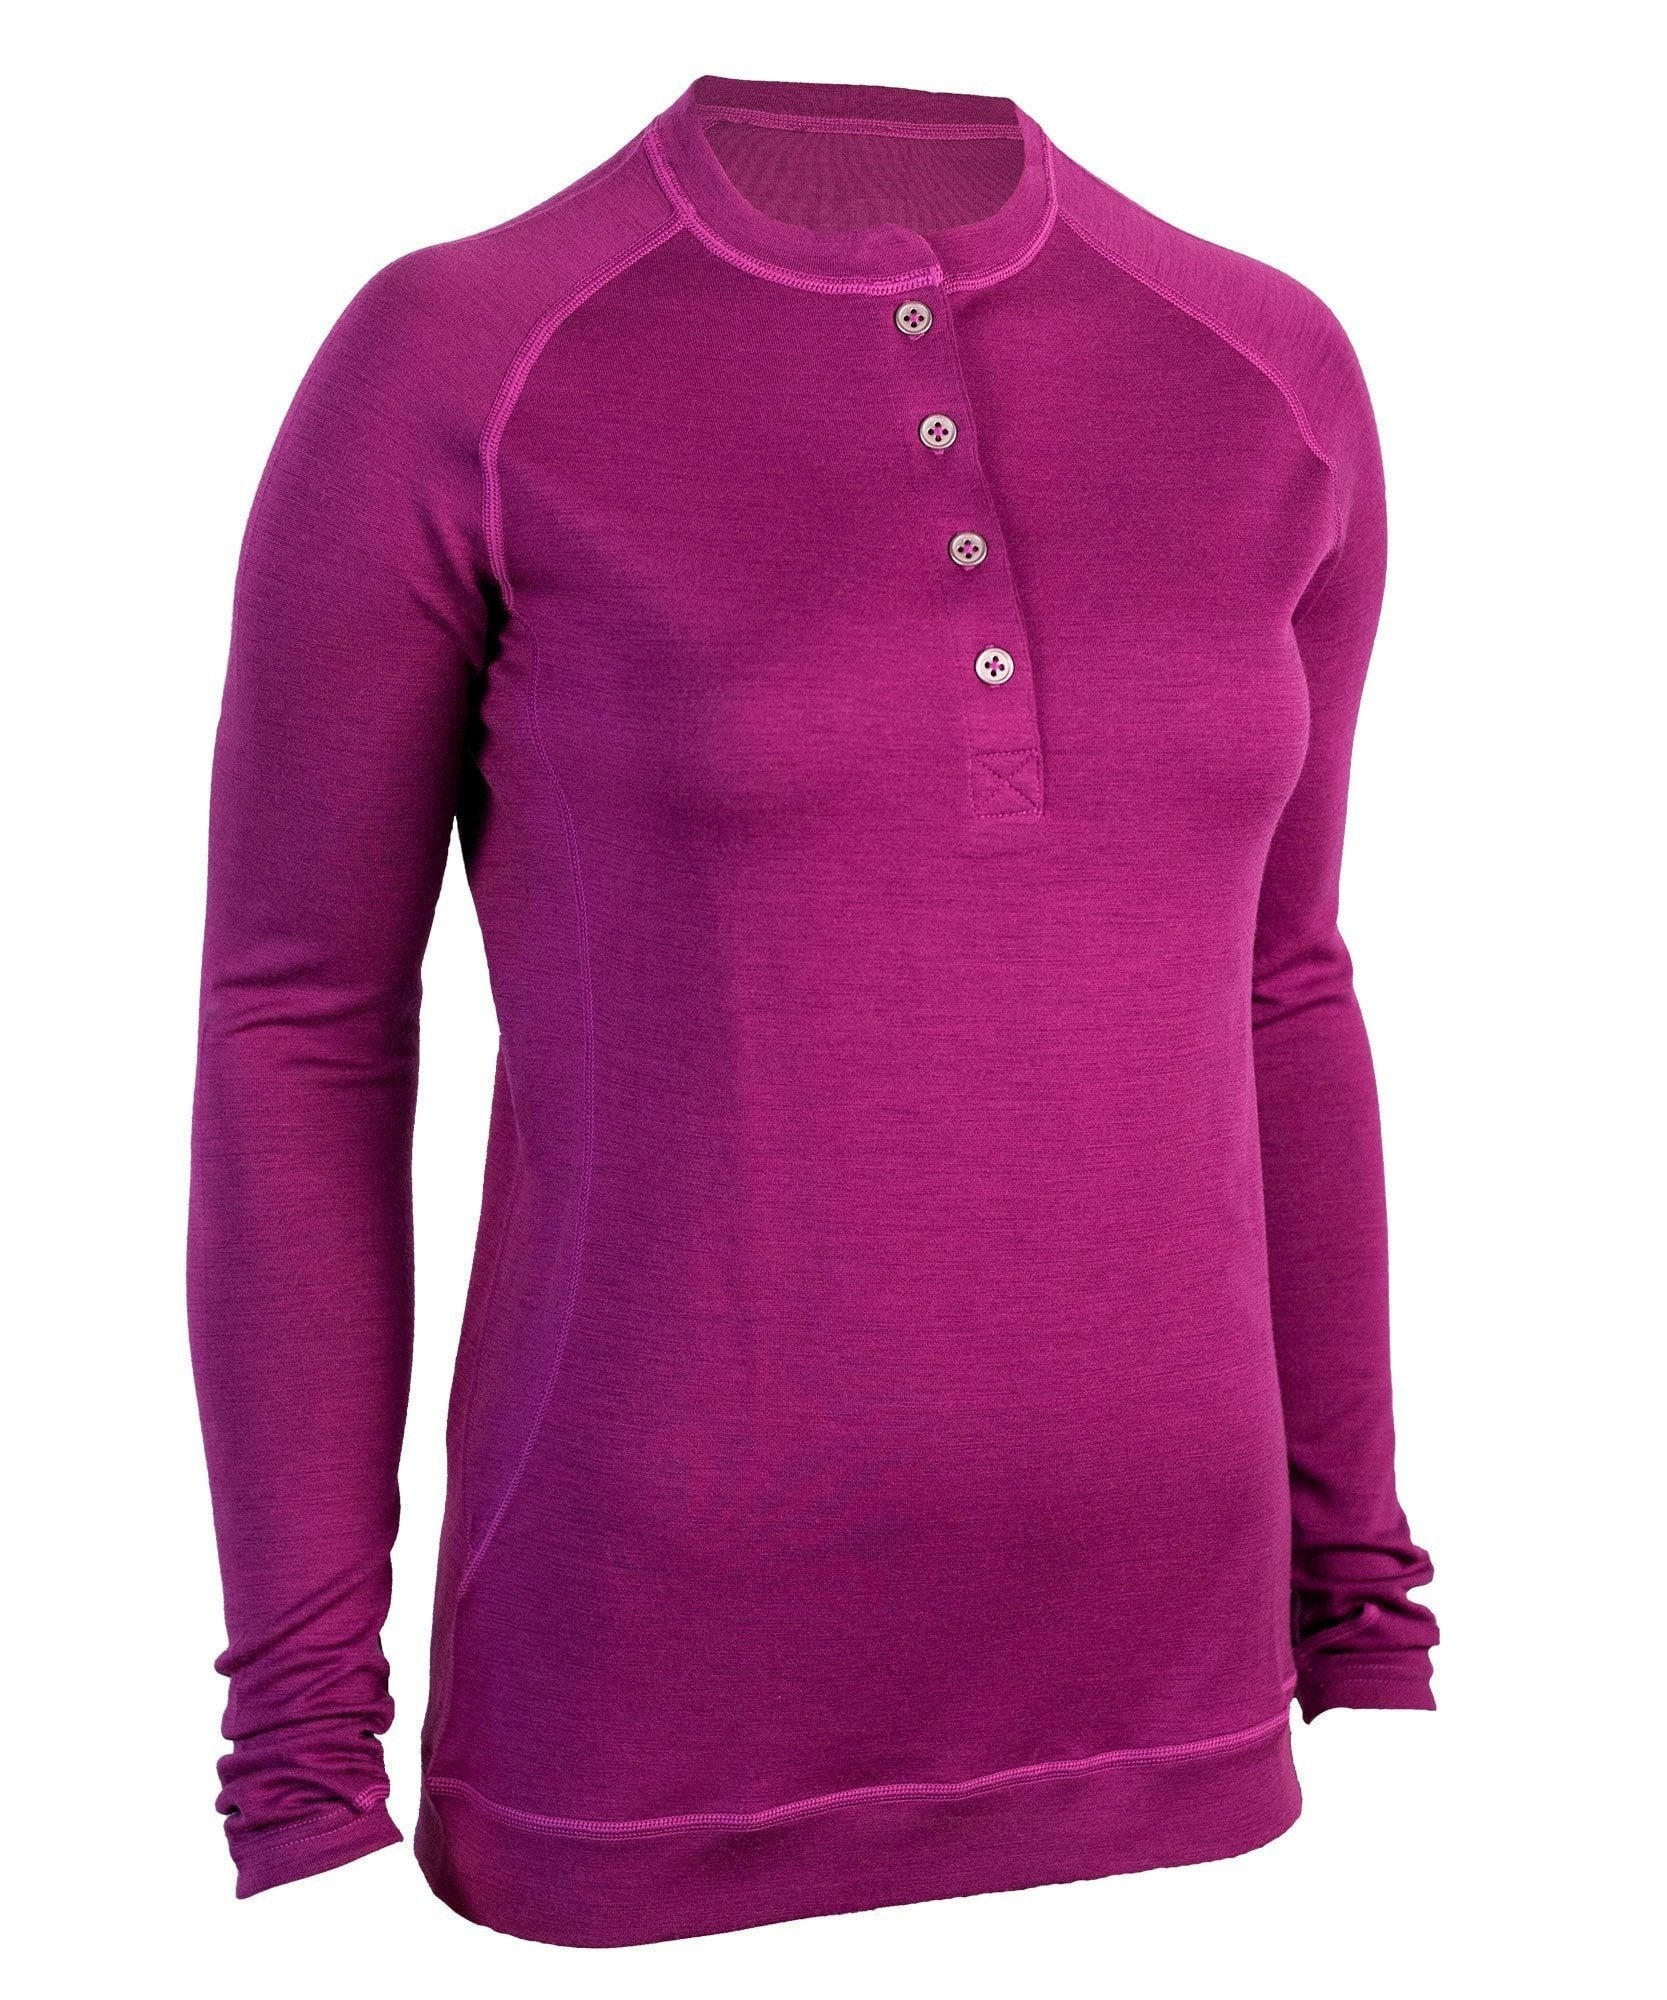 Women's Bamboo-Merino Long Sleeve Henley